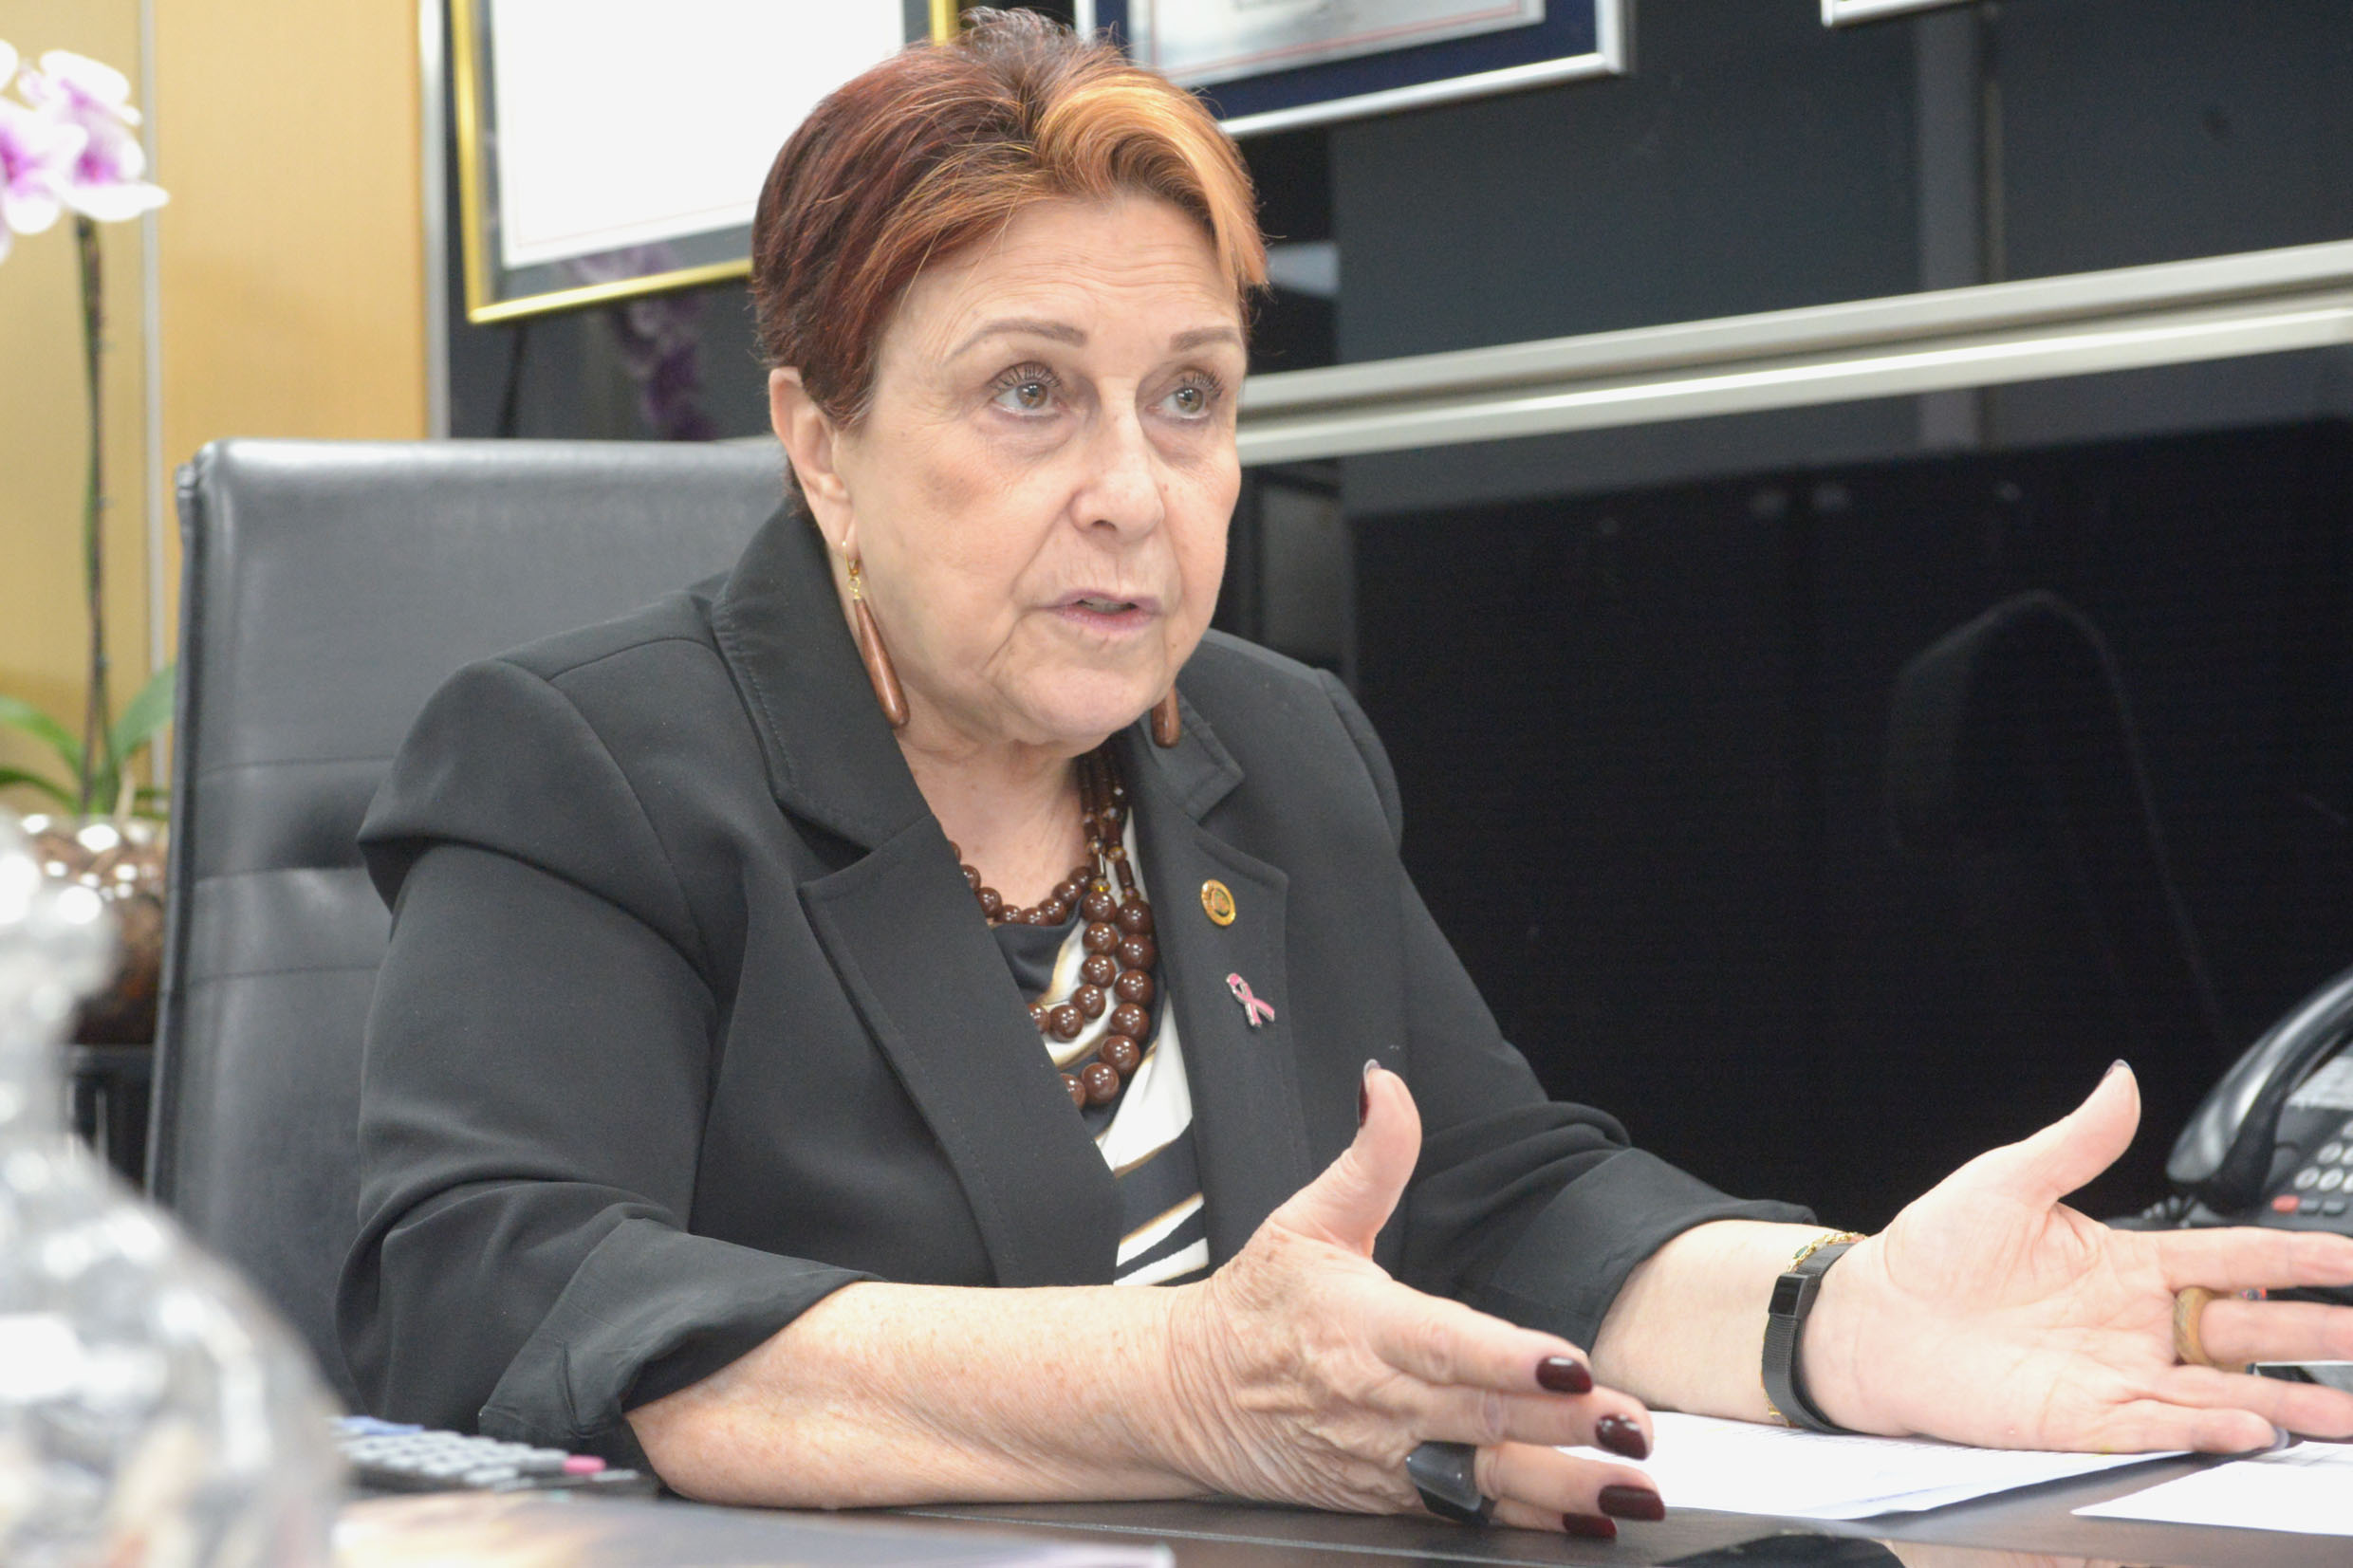 Edna Macedo<a style='float:right' href='https://www3.al.sp.gov.br/repositorio/noticia/N-10-2019/fg241648.jpg' target=_blank><img src='/_img/material-file-download-white.png' width='14px' alt='Clique para baixar a imagem'></a>